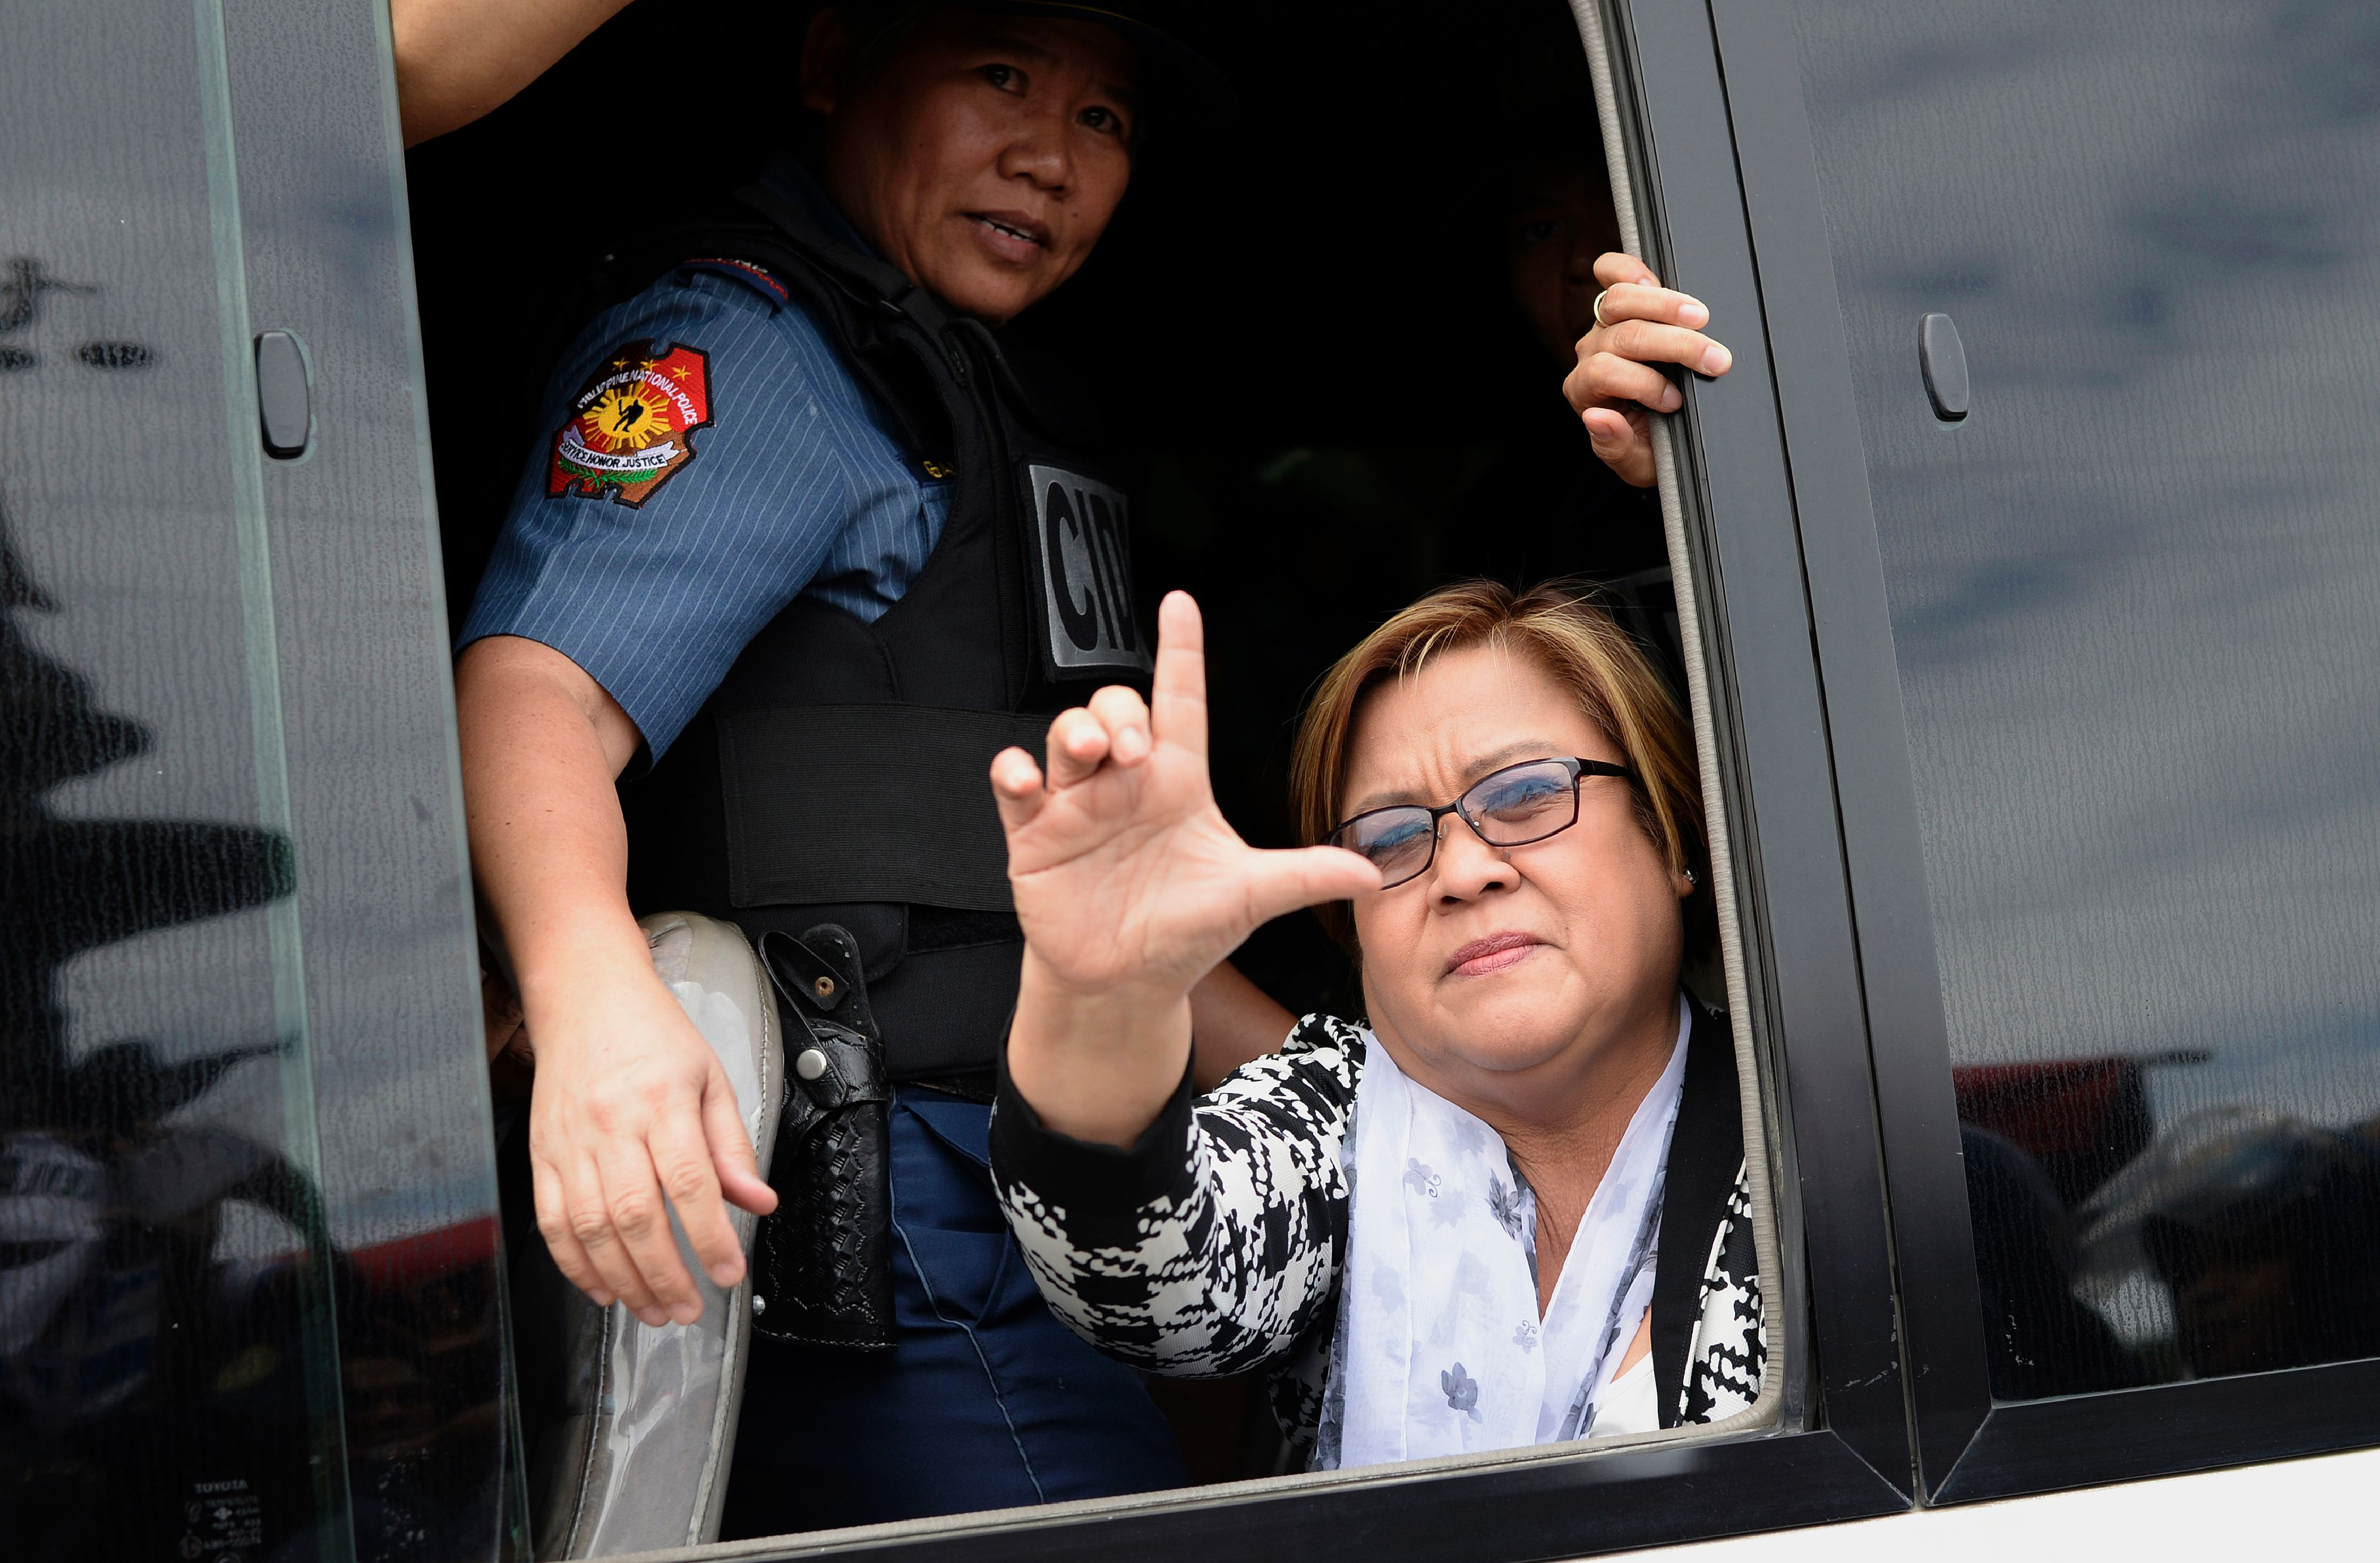 Philippine Senator Leila de Lima, a former human-rights commissioner who is one of Duterte's most vocal opponents, waves to her supporters after appearing at a court in Muntinlupa City, suburban Manila, on Feb. 24, 2017